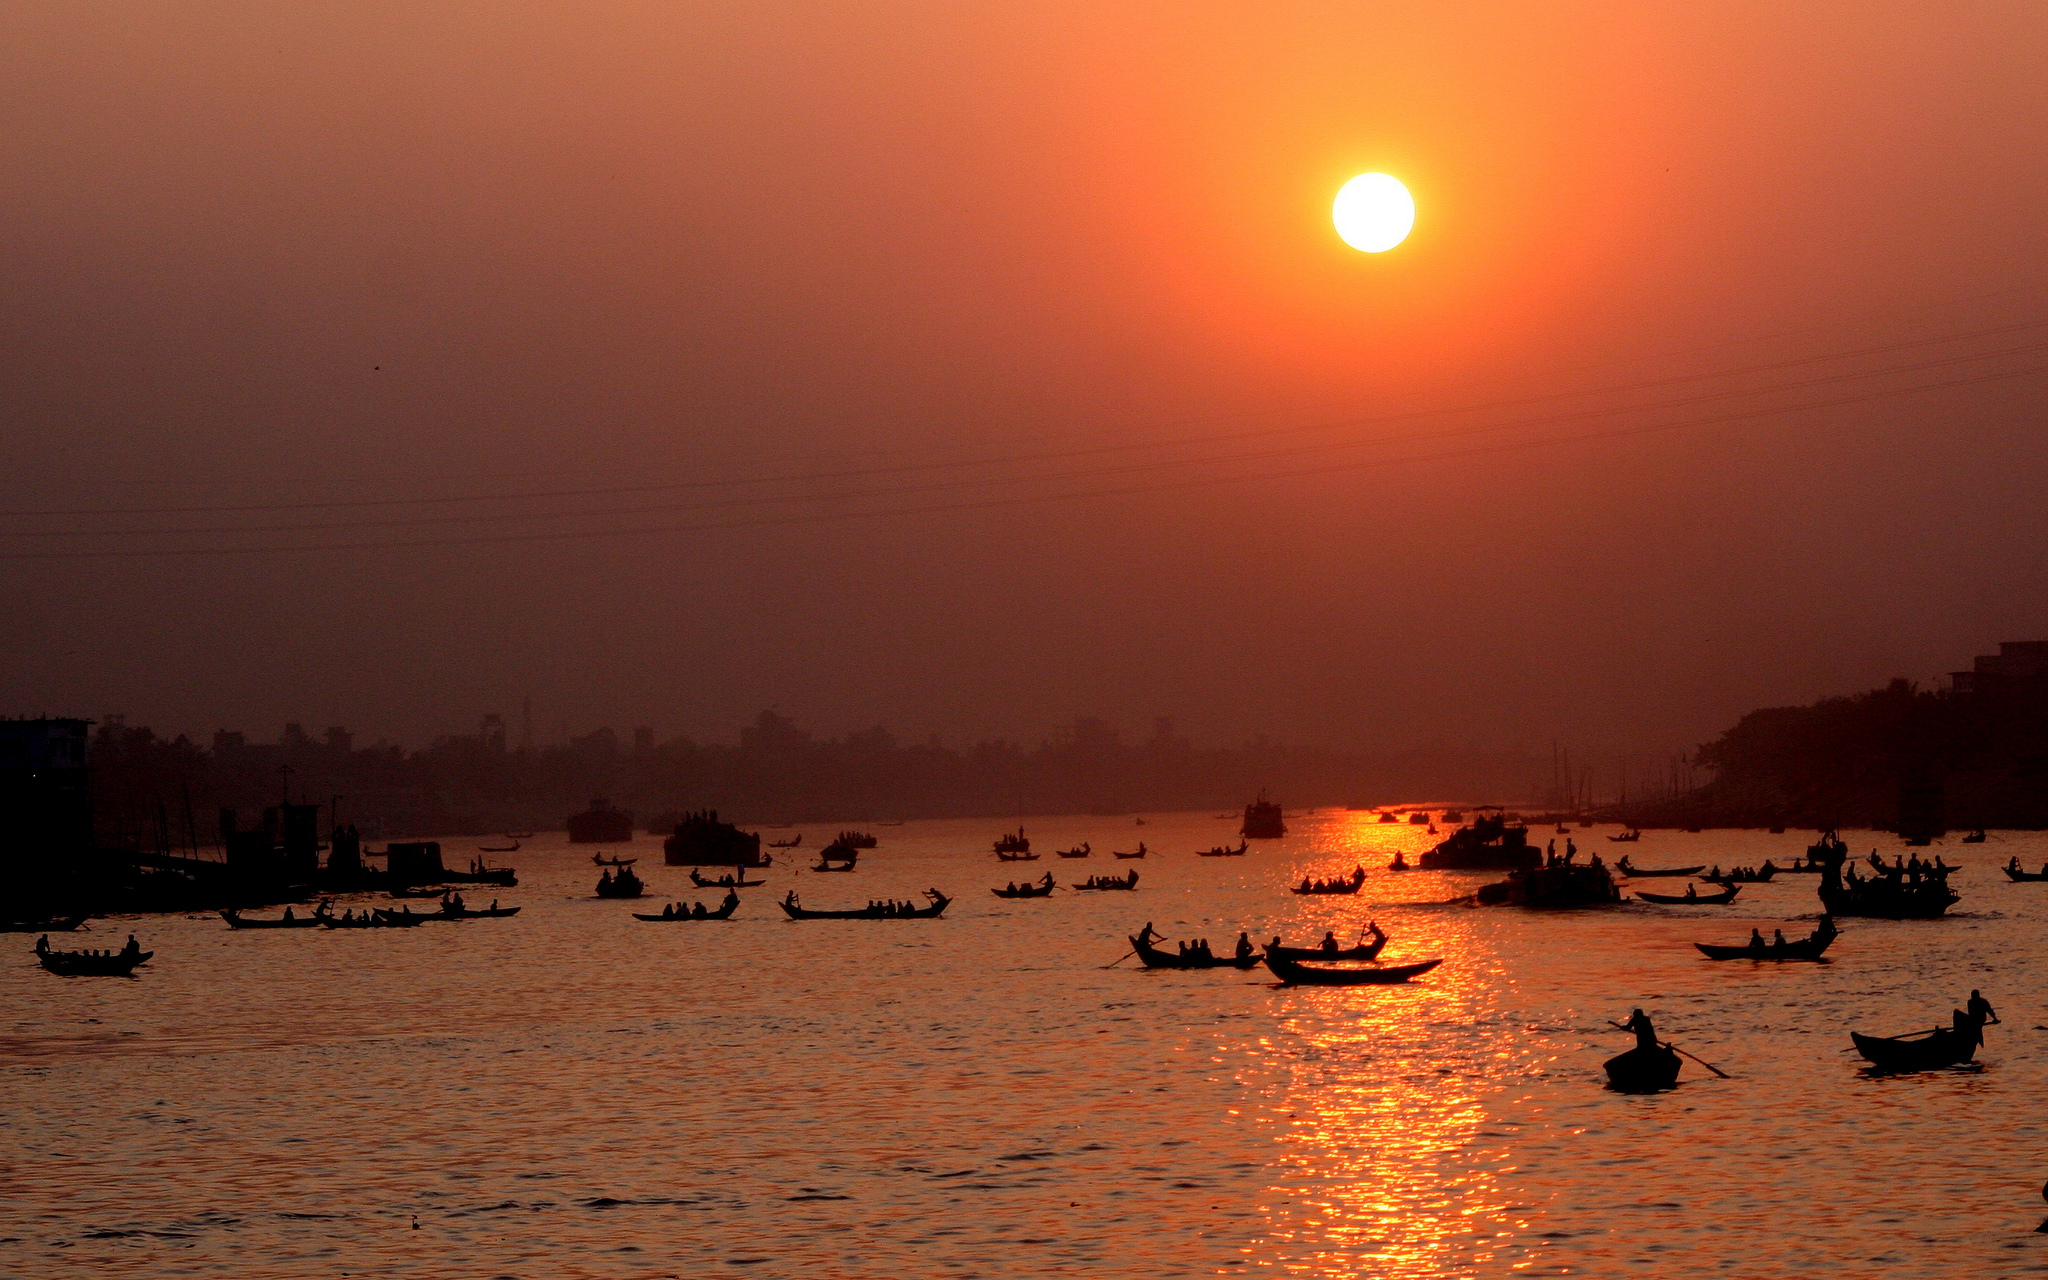 Boats crossing the Buriganga River | © Nasir Khan / Flickr